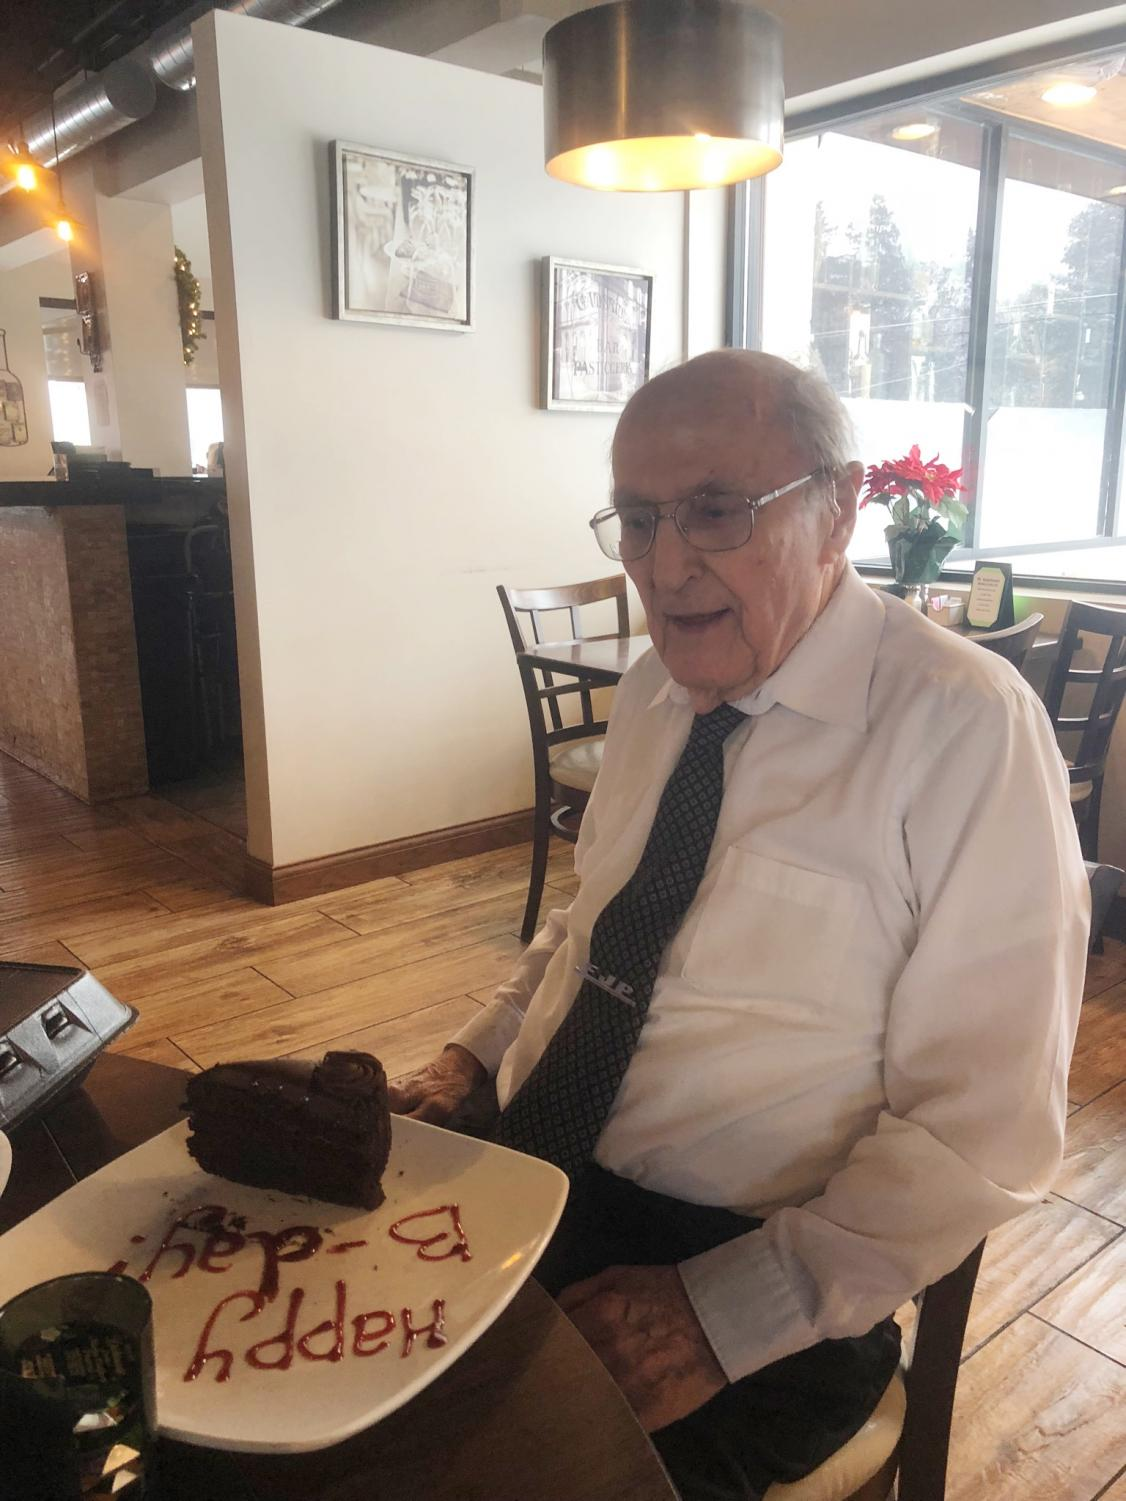 Lisa Durrant's grandfather, Frank Pankanin, seated for birthday breakfast after his festive walk to the table.